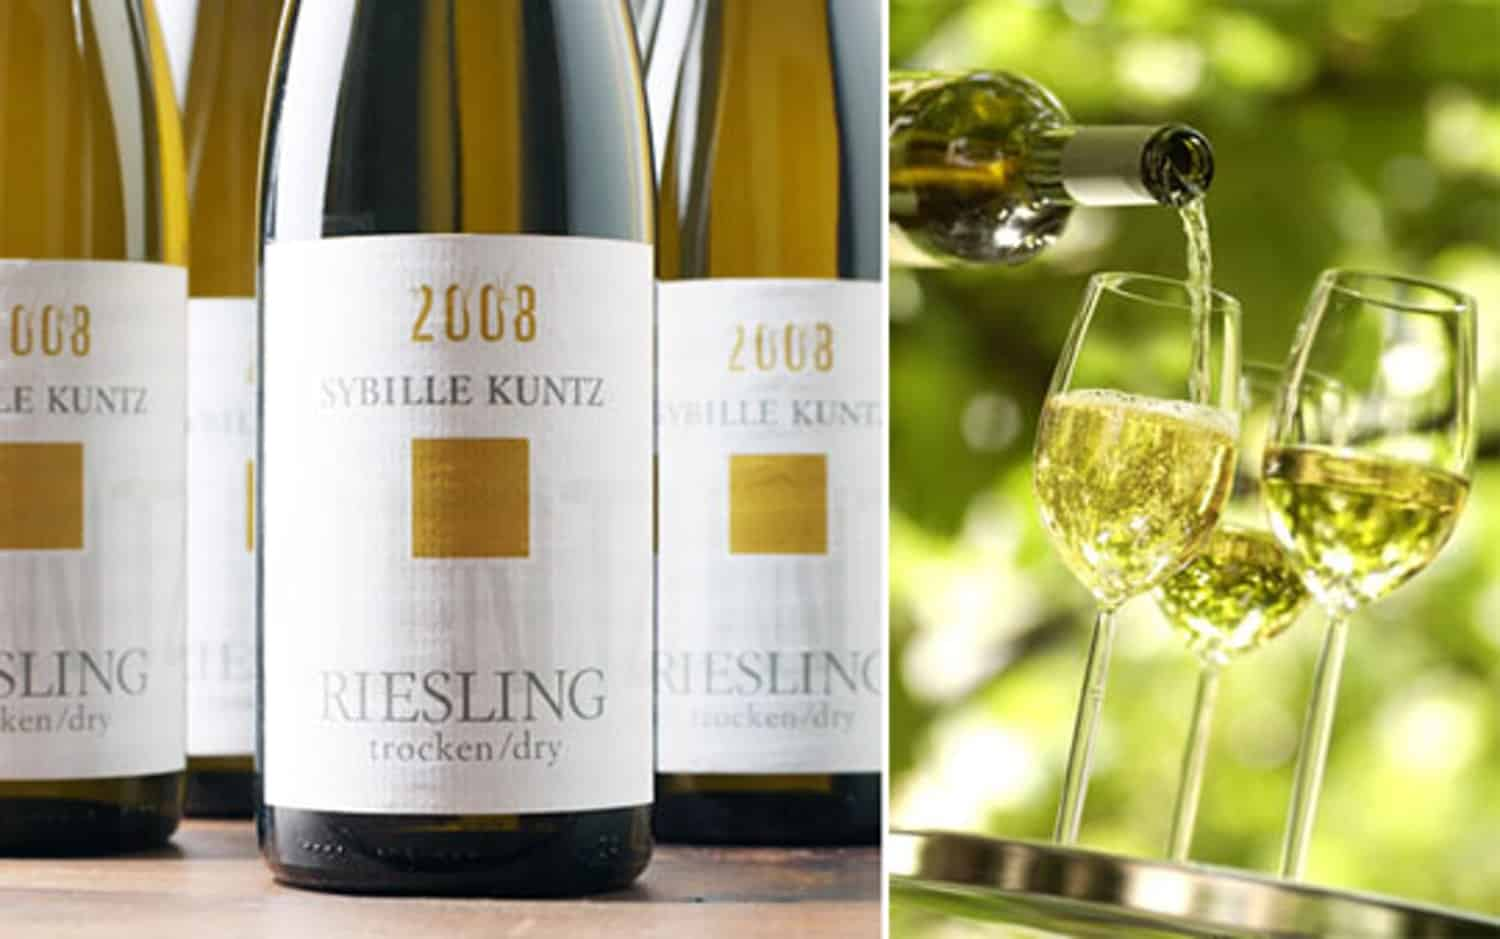 Riesling – type of wine